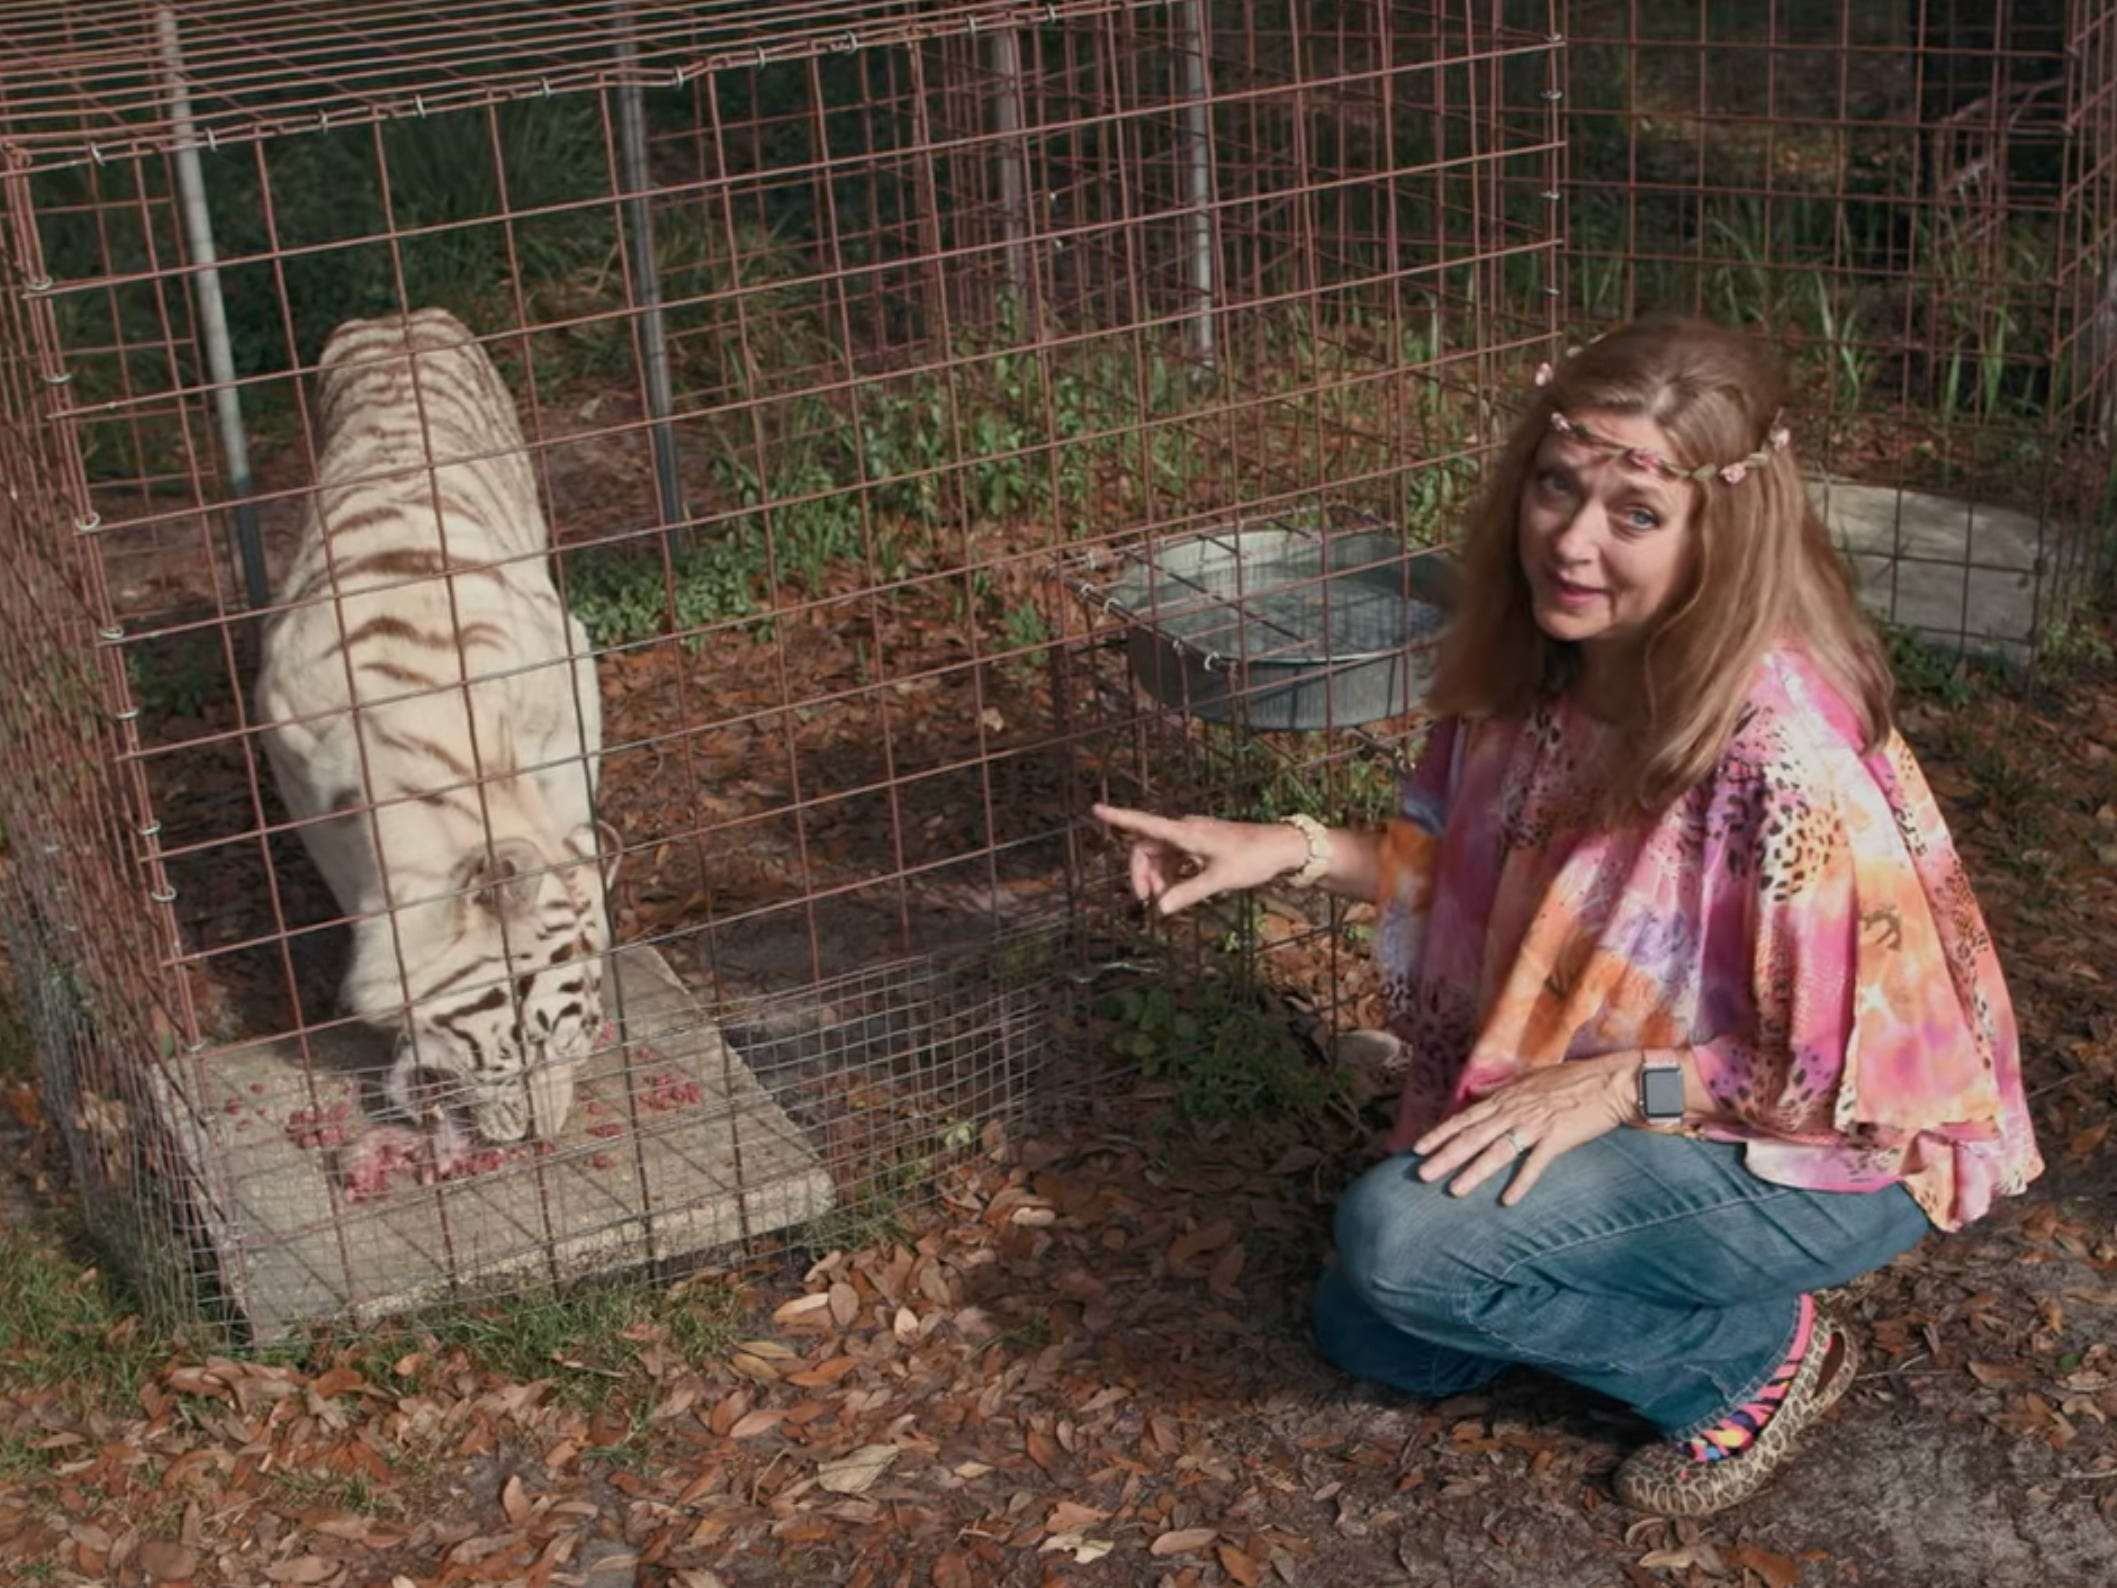 Carole Baskin Big Cat Rescue Might Not Open Again After Tiger King Insider